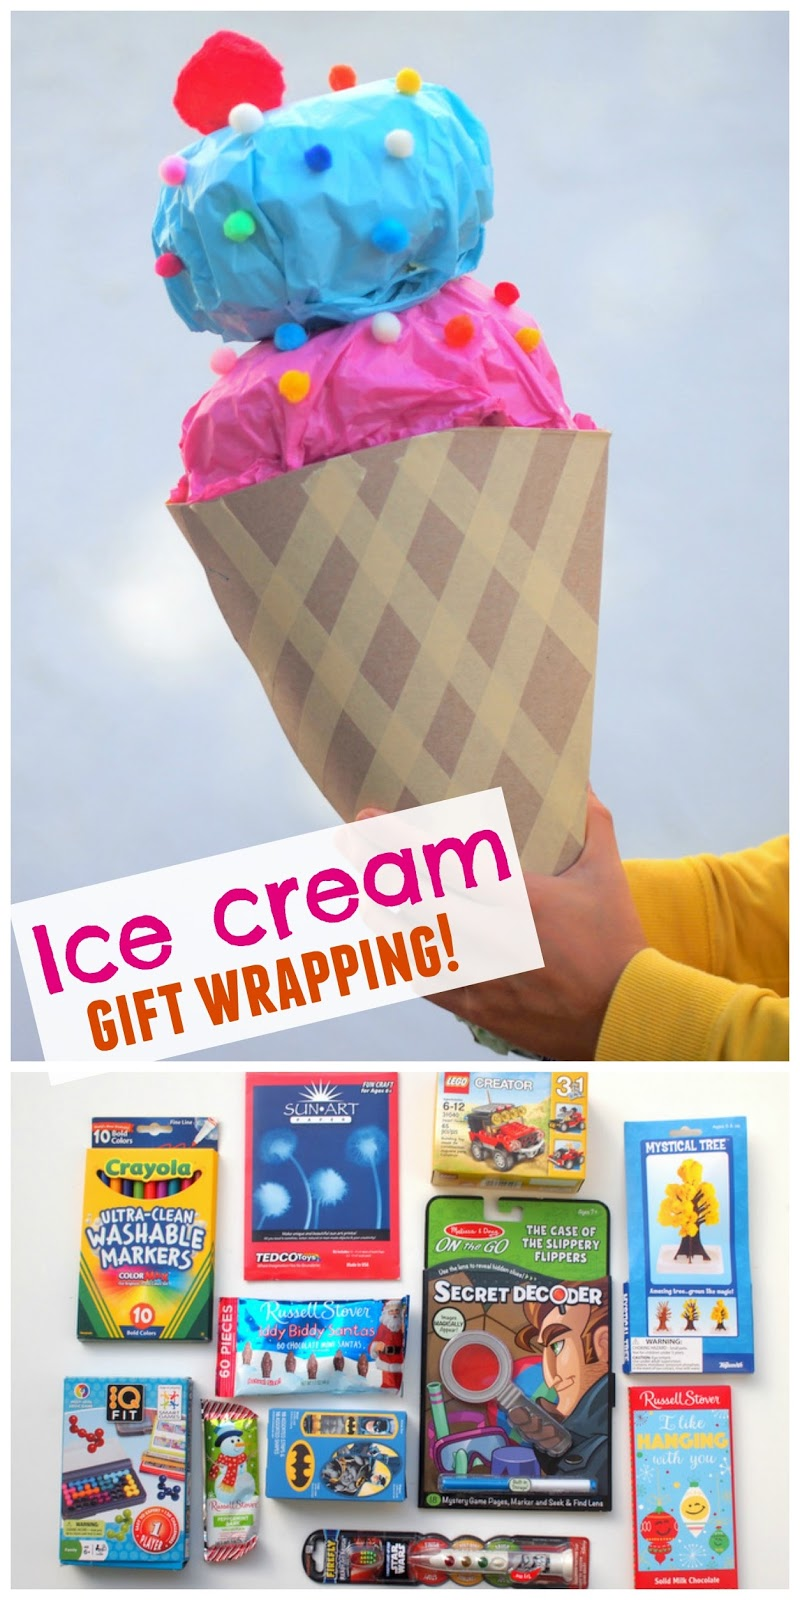 Diy Giant Ice Cream Cone Gift Wrapping A Fun Alternative To Christmas Stockings Pink